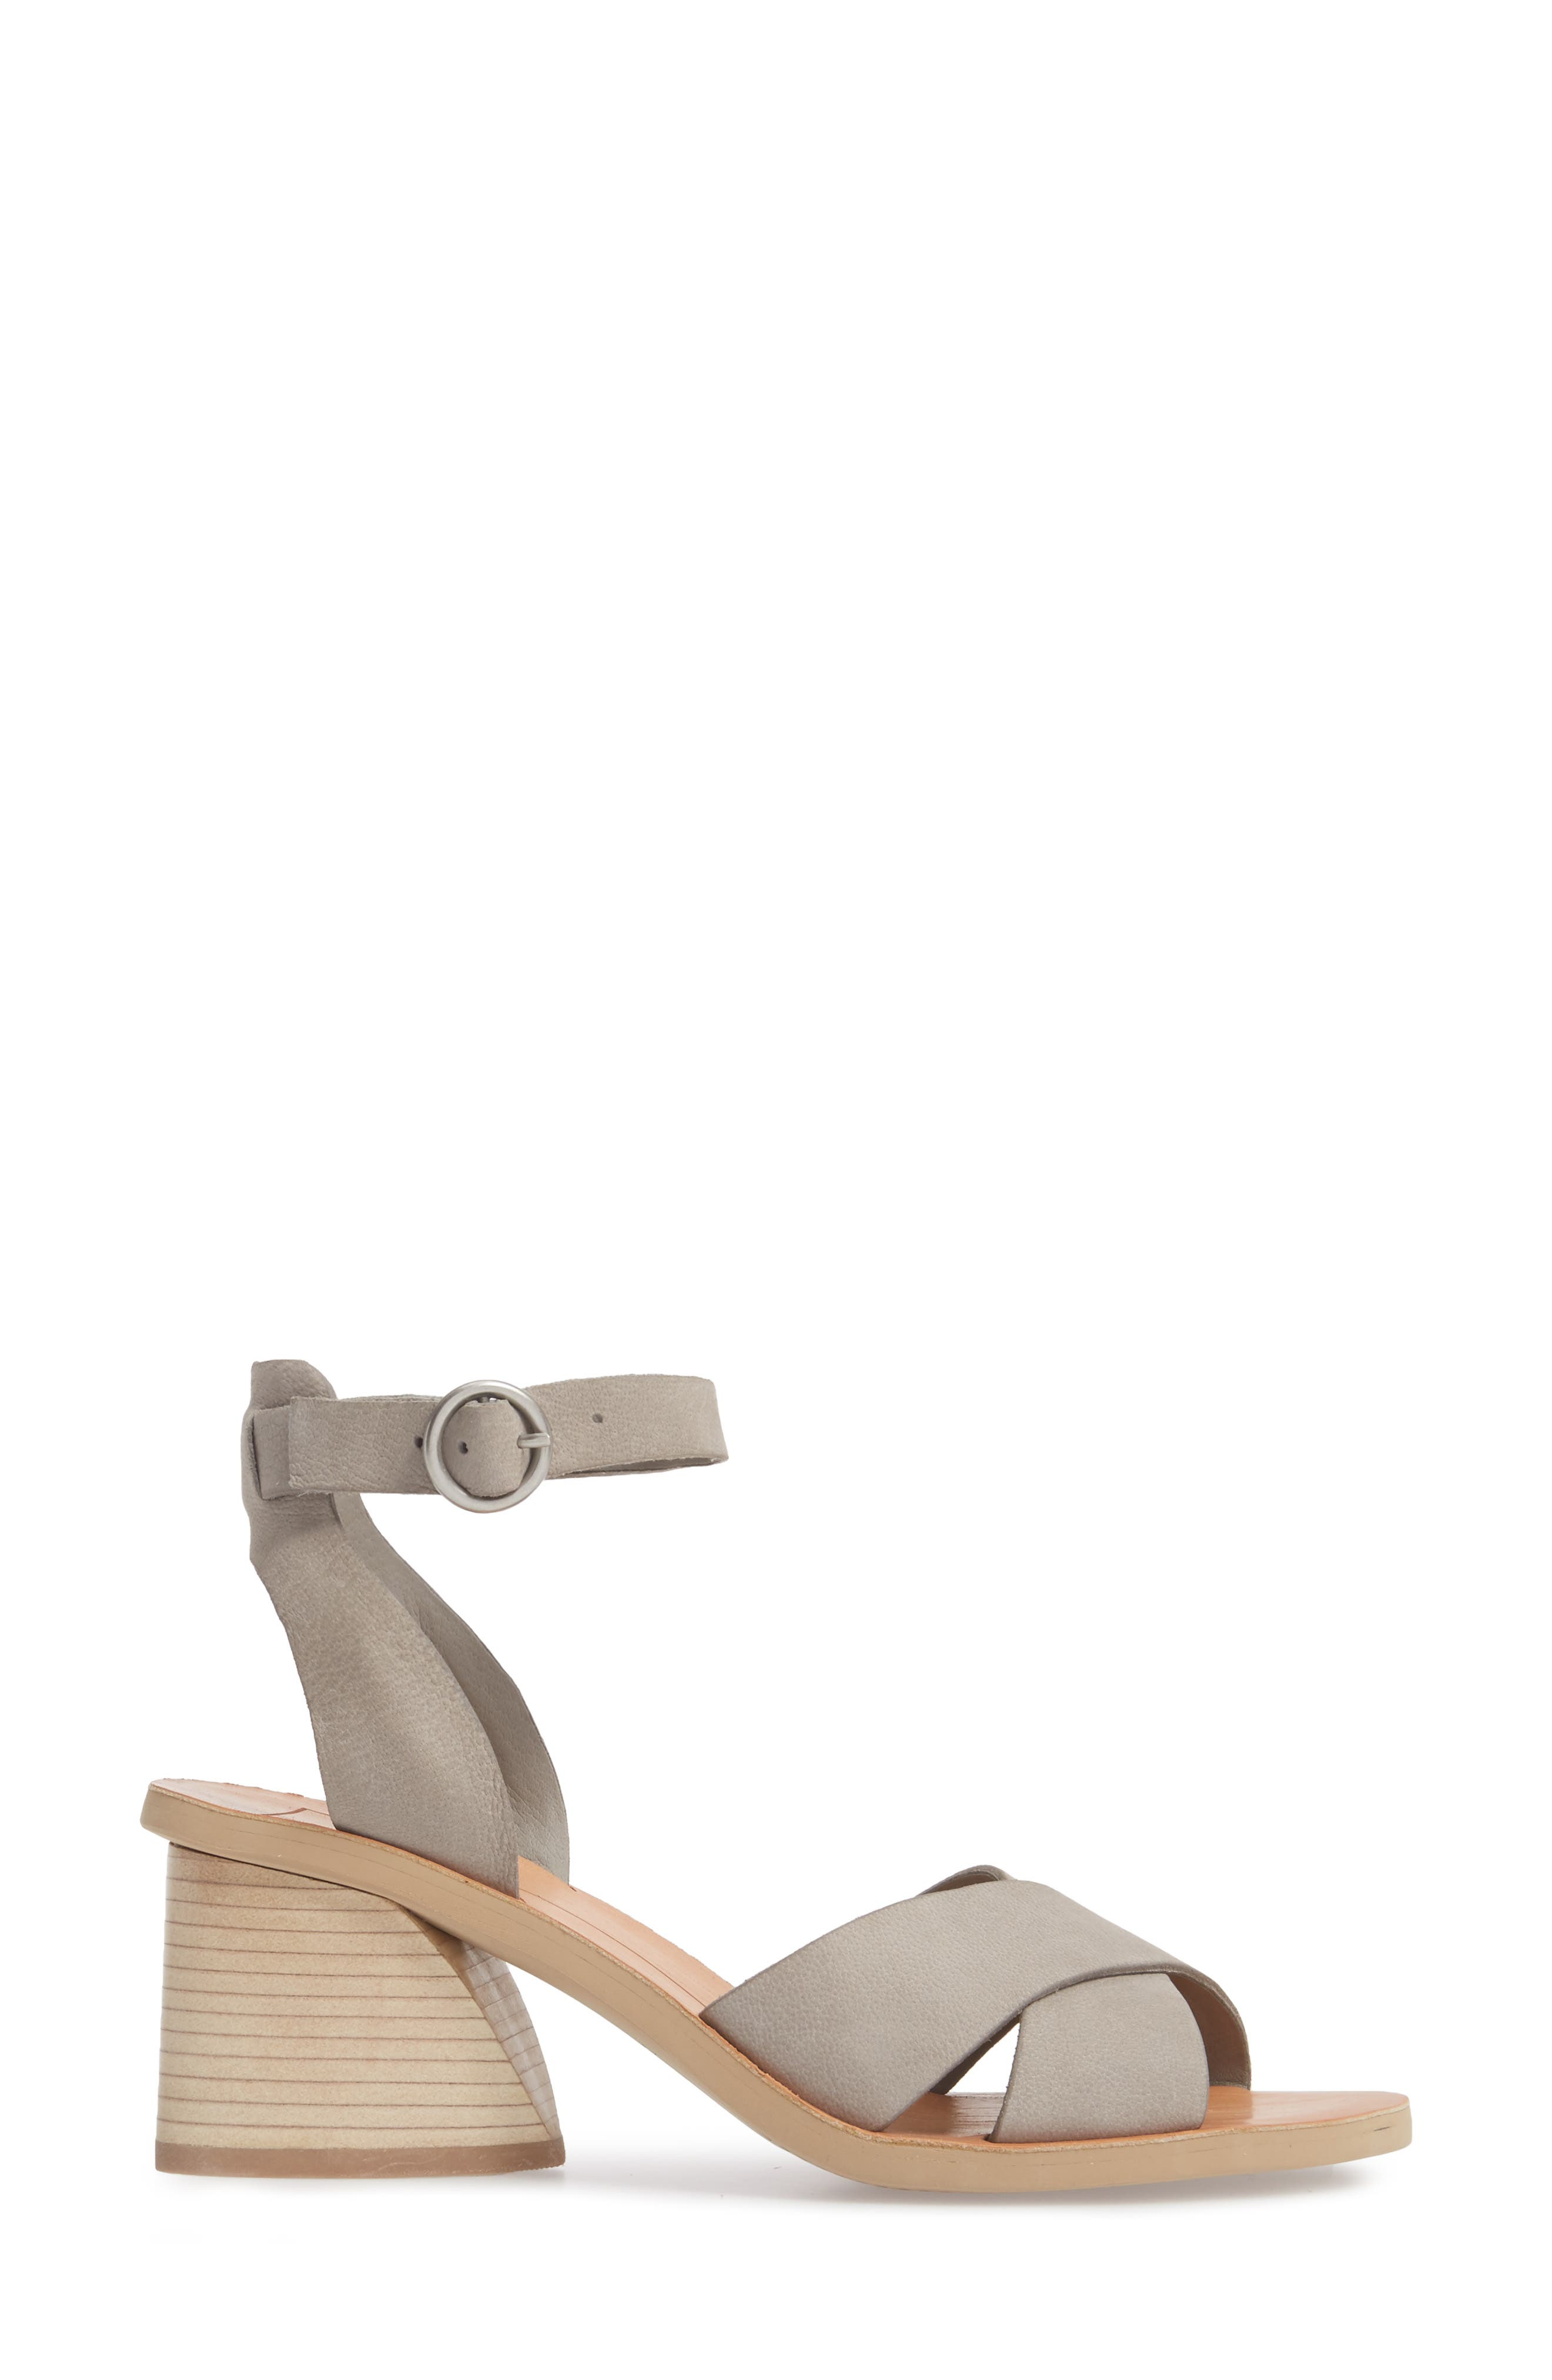 Roman Flared Heel Sandal,                             Alternate thumbnail 3, color,                             020